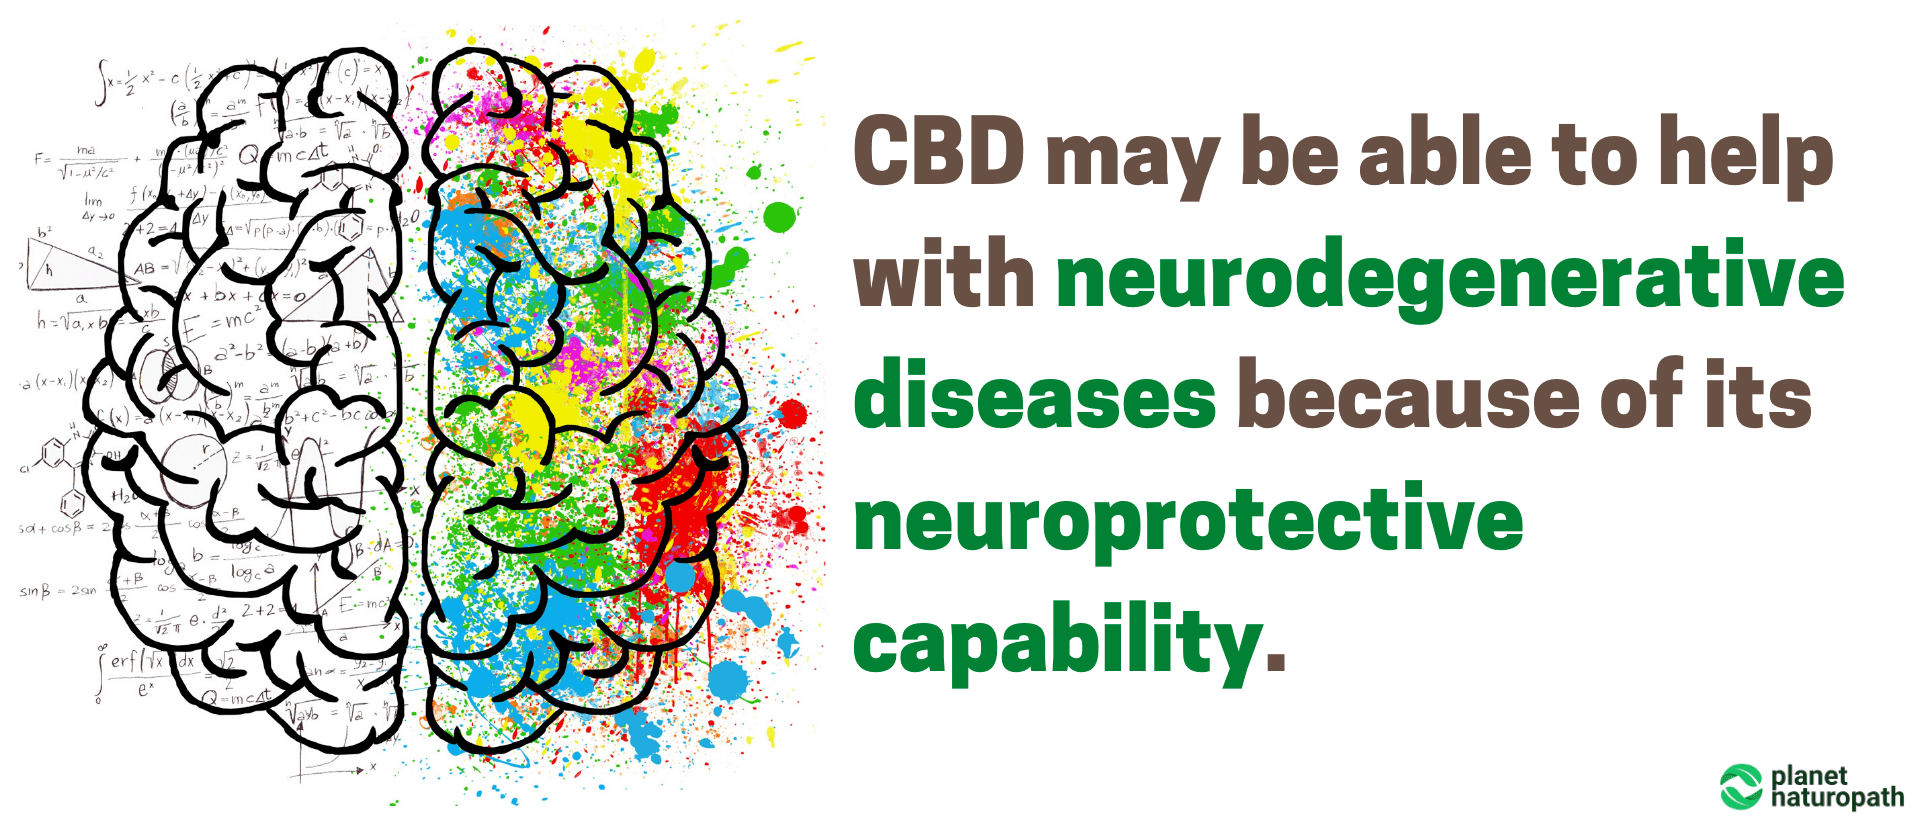 CBD-may-be-able-to-help-with-neurodegenerative-diseases